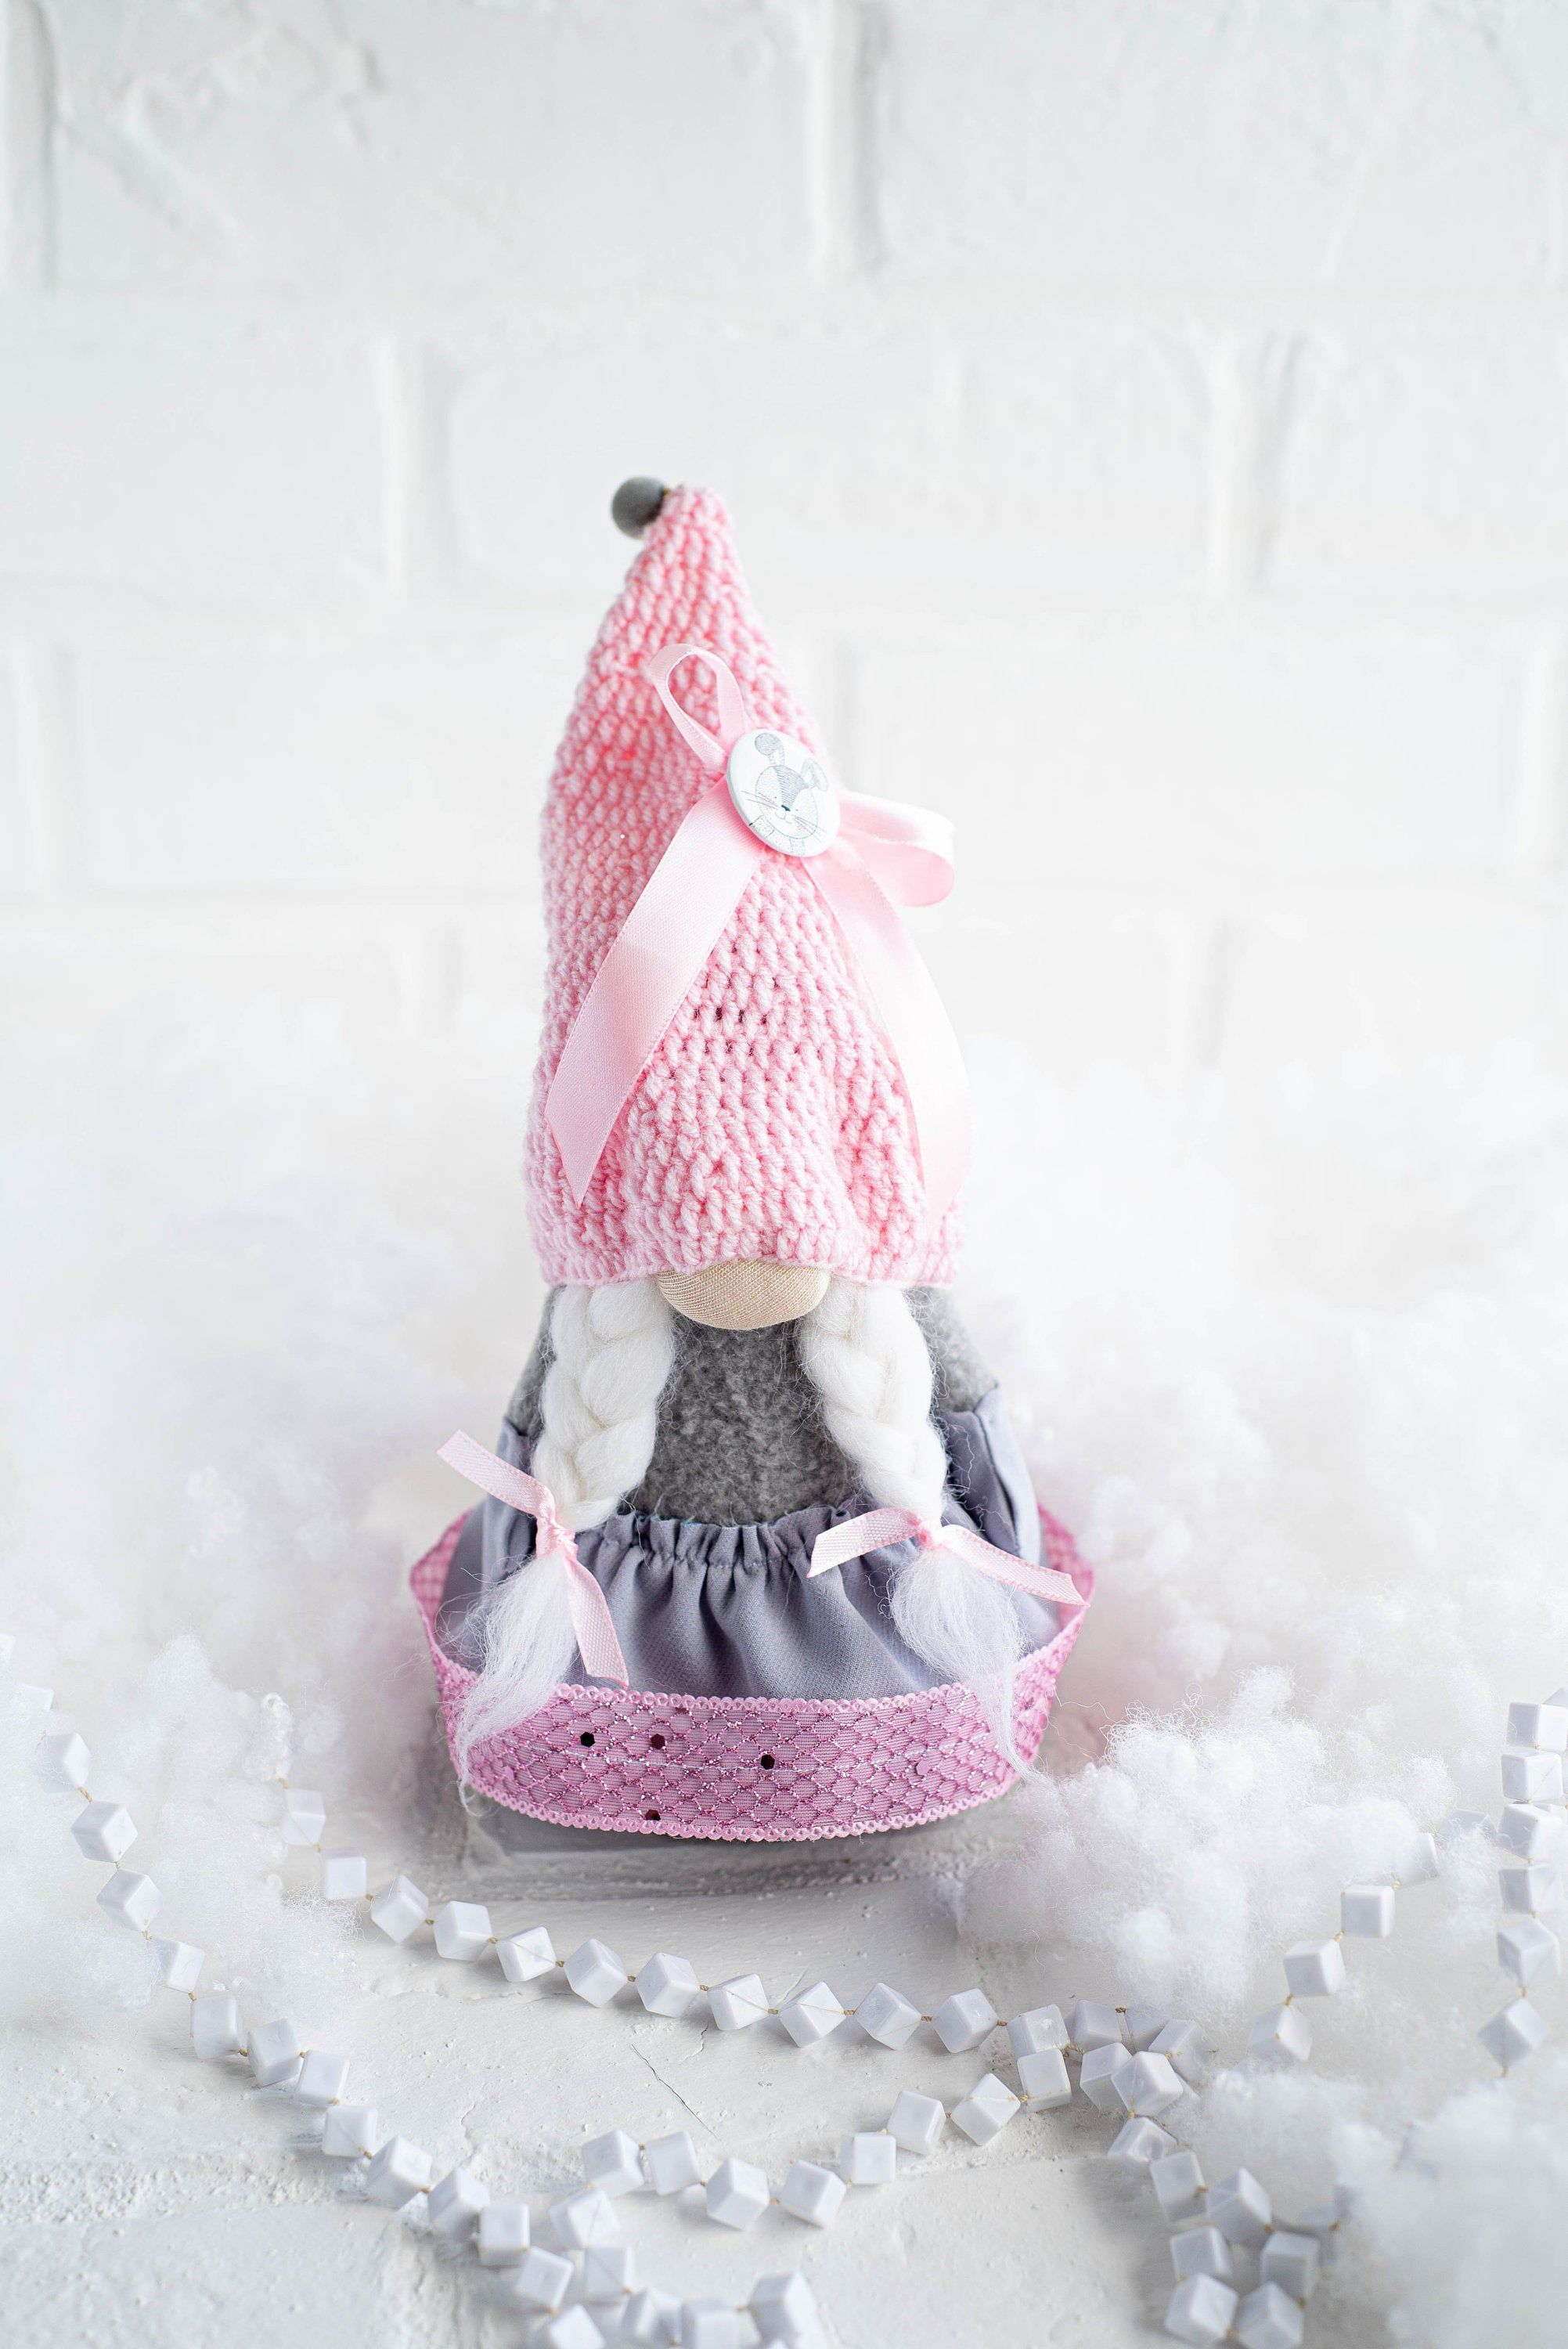 Flower gnome Spring gnome Mothers day gift Interior toy 4th of July gnome